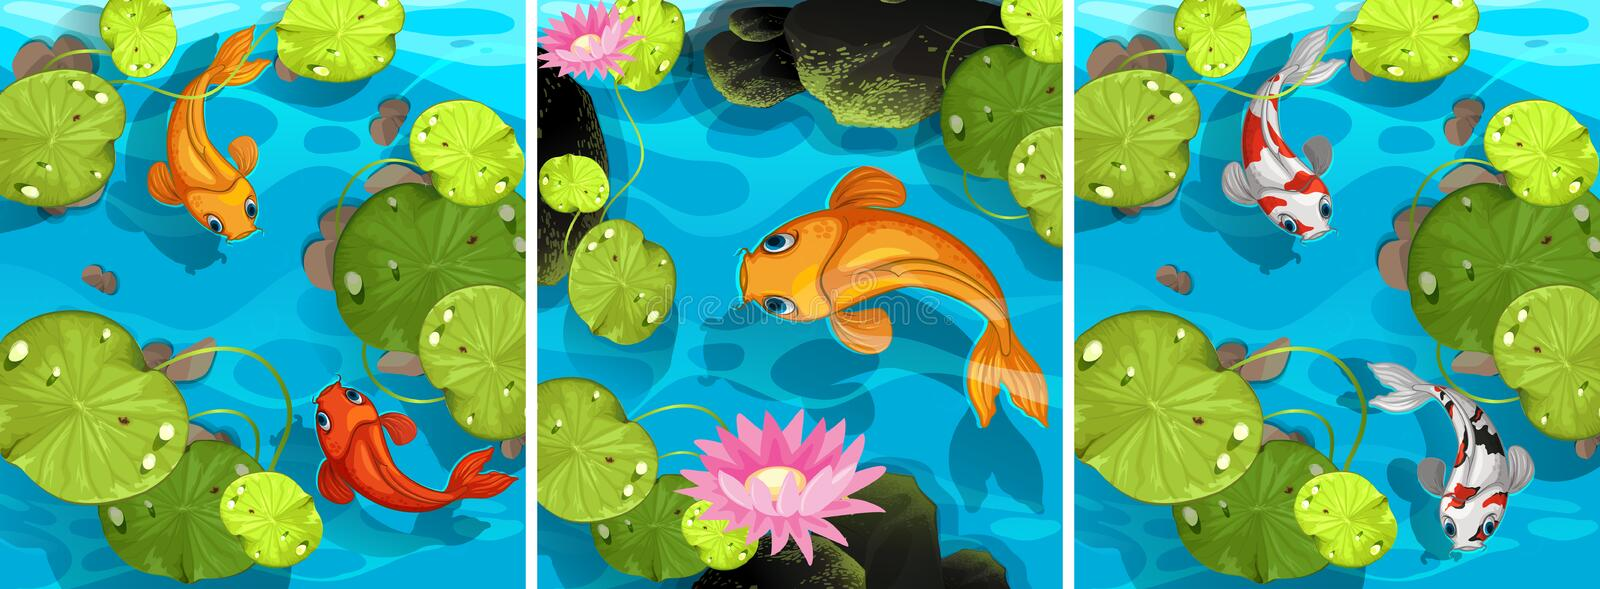 Scene with fish swimming in the pond. Illustration vector illustration